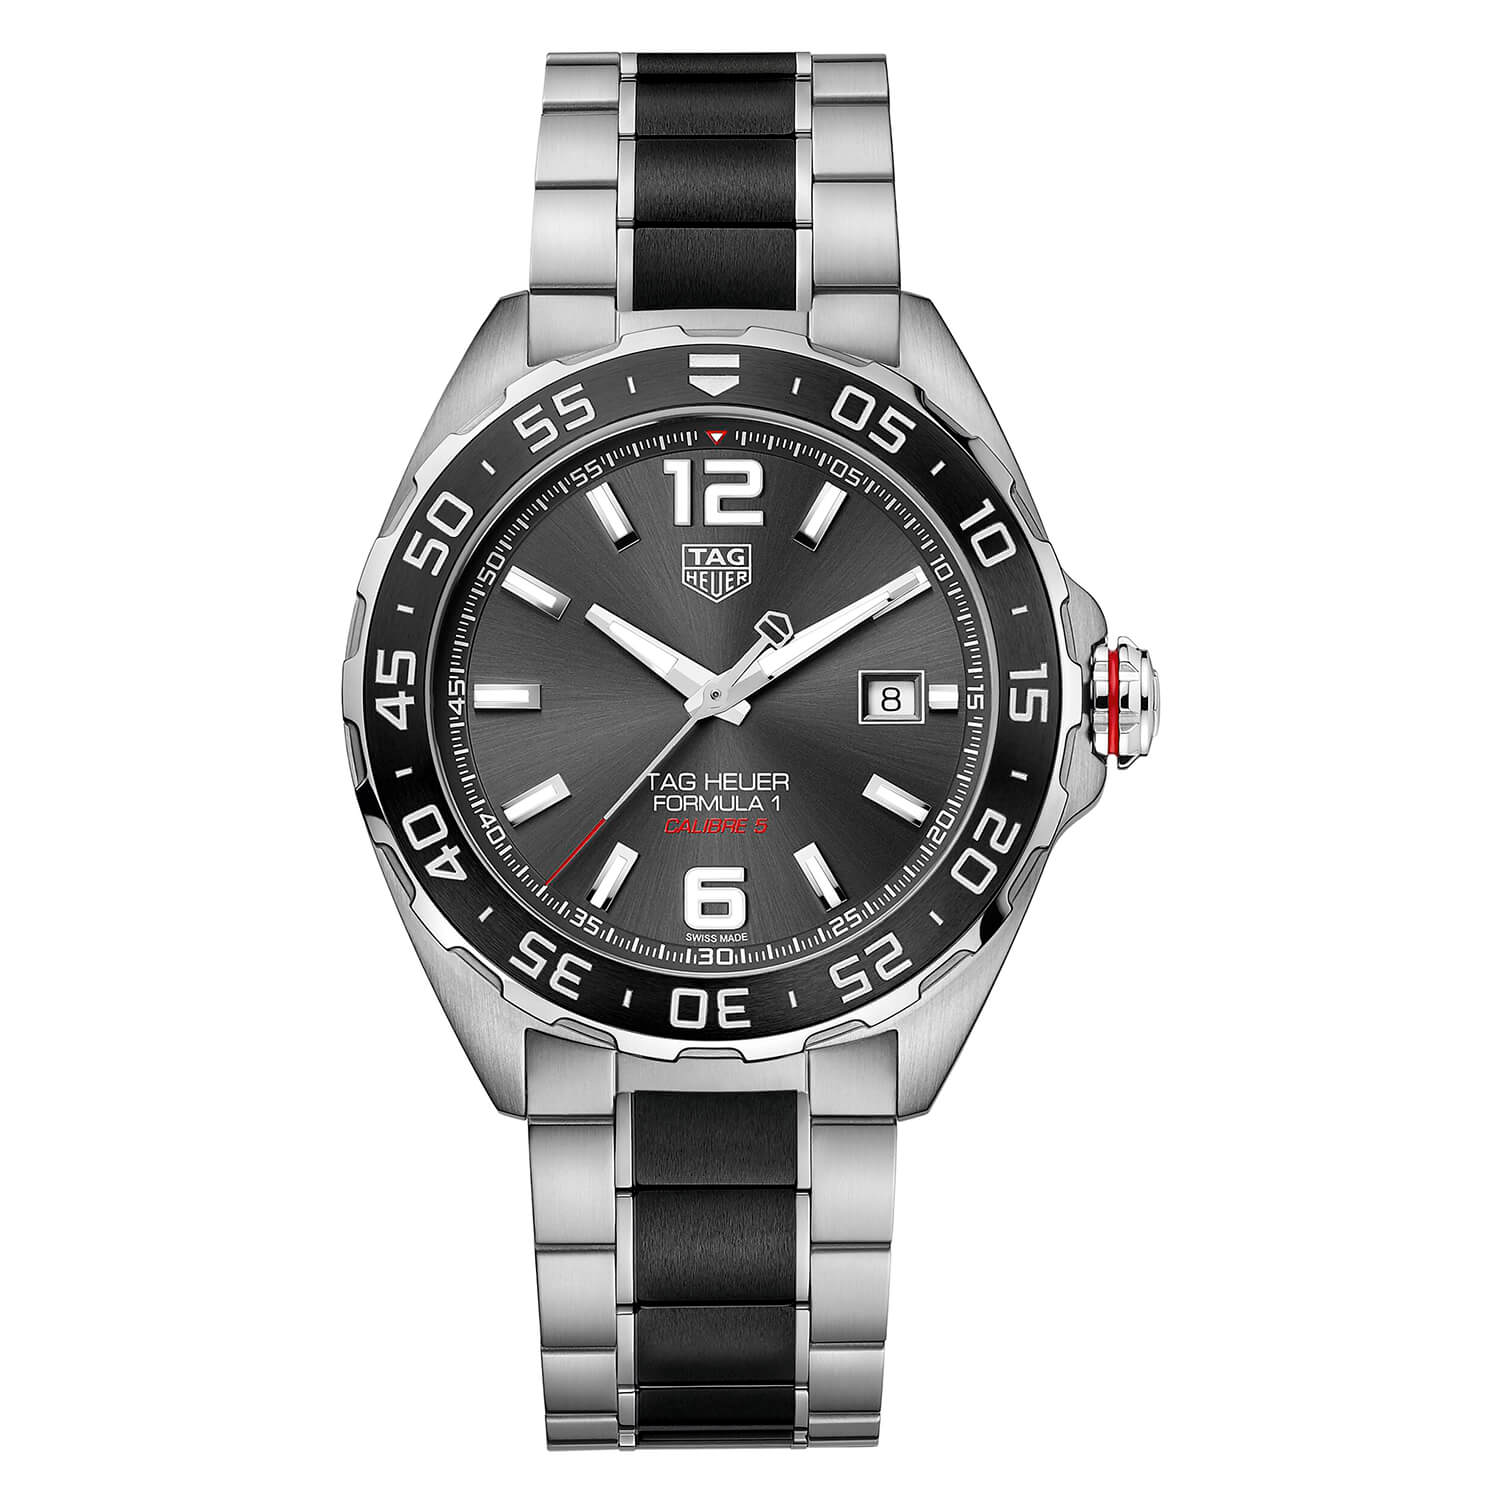 TAG Heuer Formula 1 Automatic men's ceramic and stainless steel watch